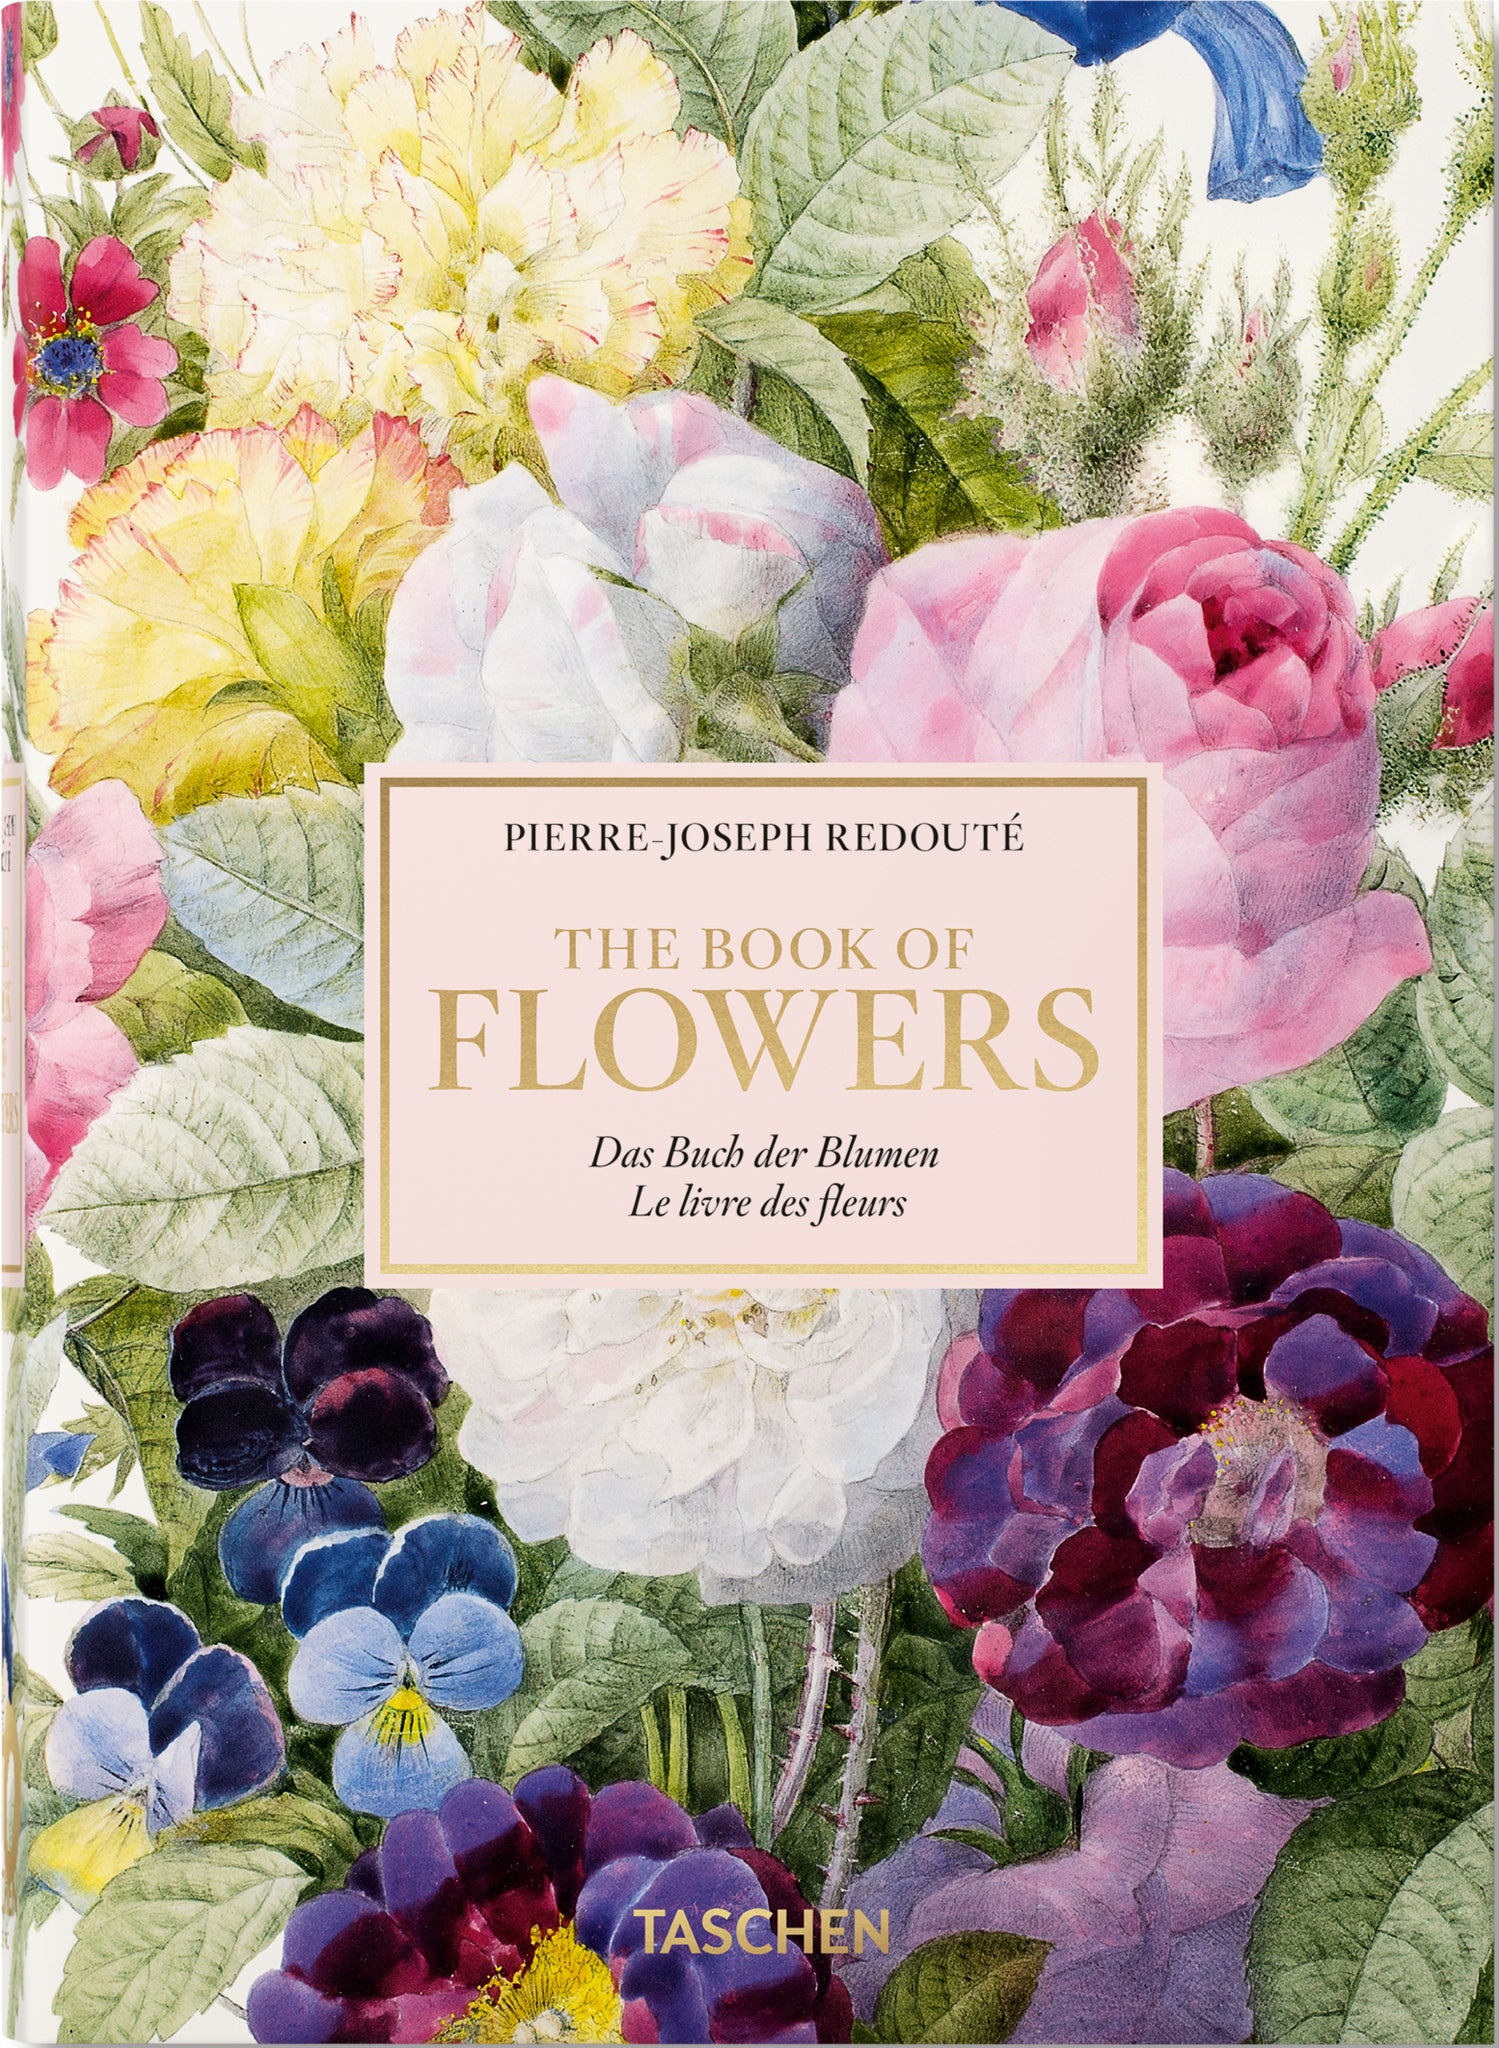 Pierre Joseph Redoute - The Book of Flowers: Taschen 40